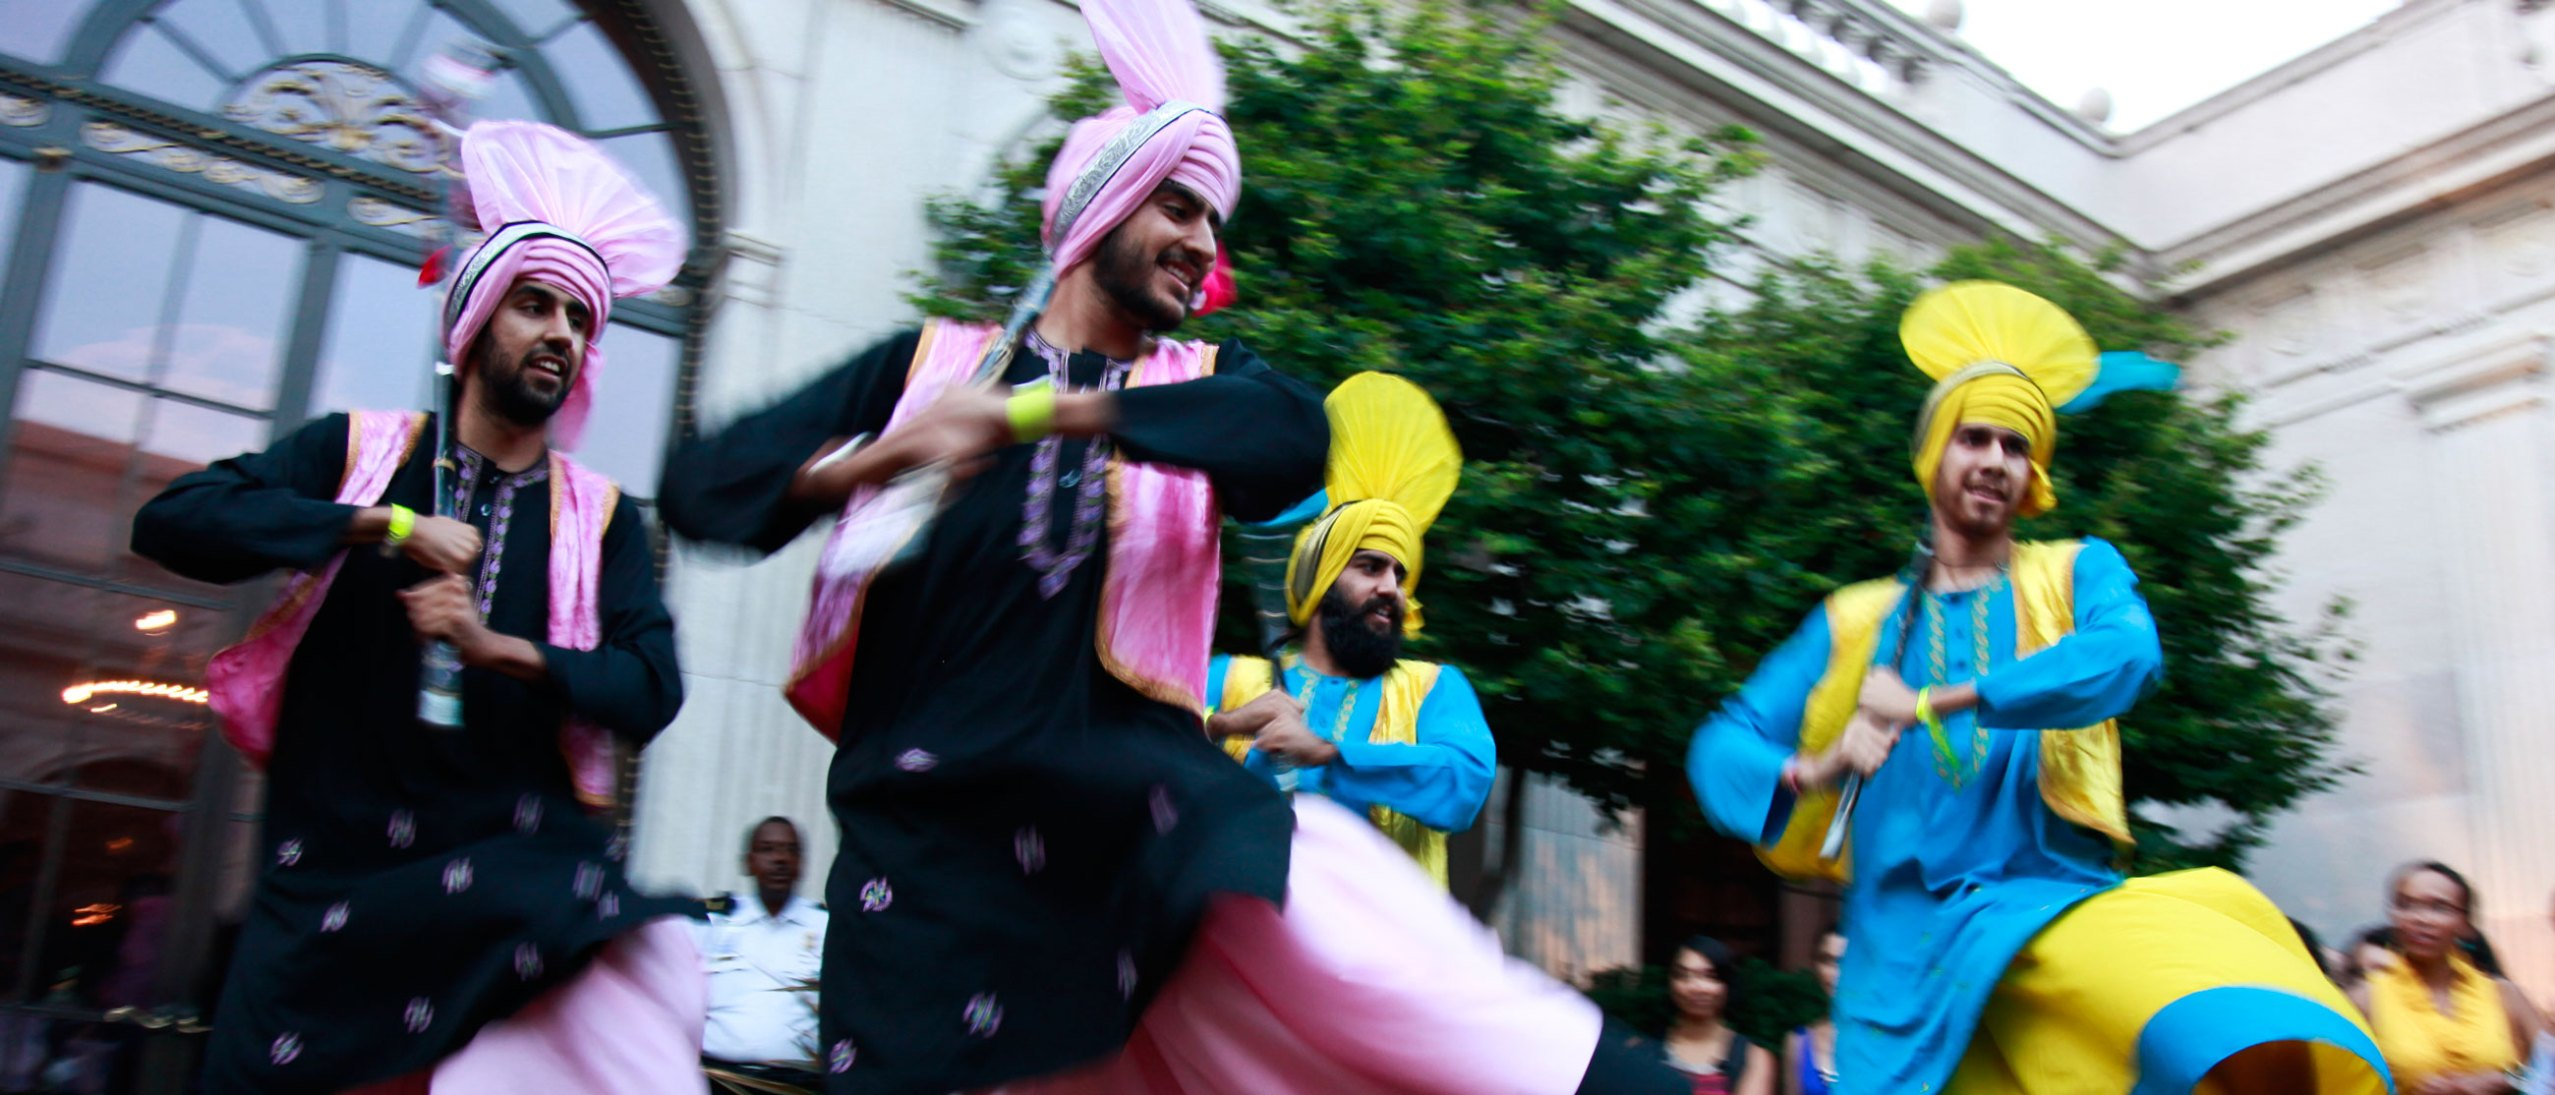 Bhangra dancers performing at an Asia After Dark event